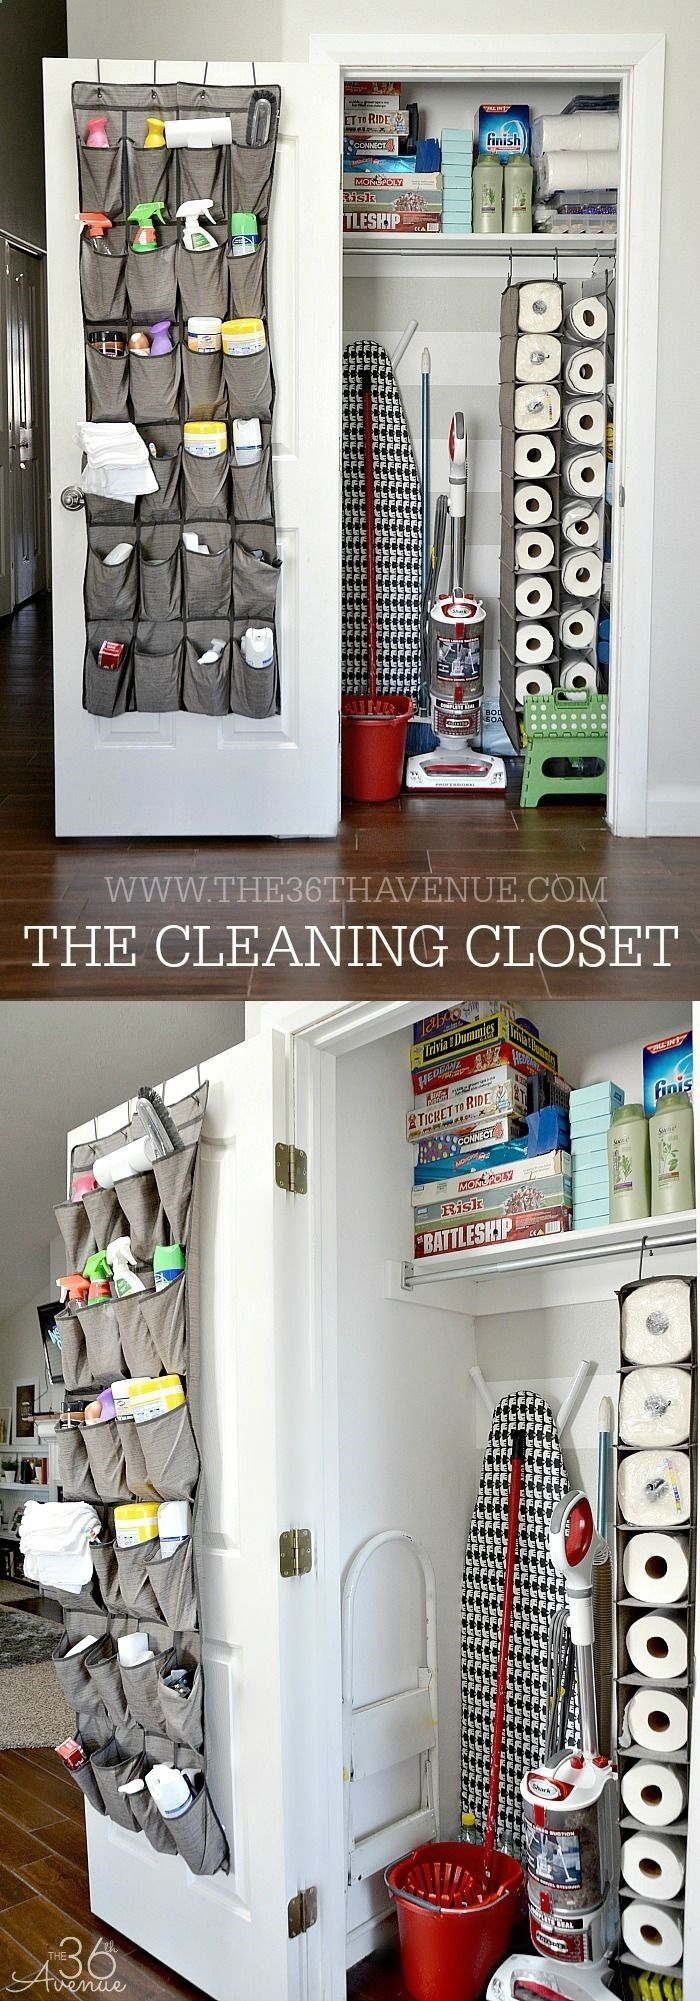 Ideen vorhänge über spüle cleaning tips  a closet just for cleaning great organization and